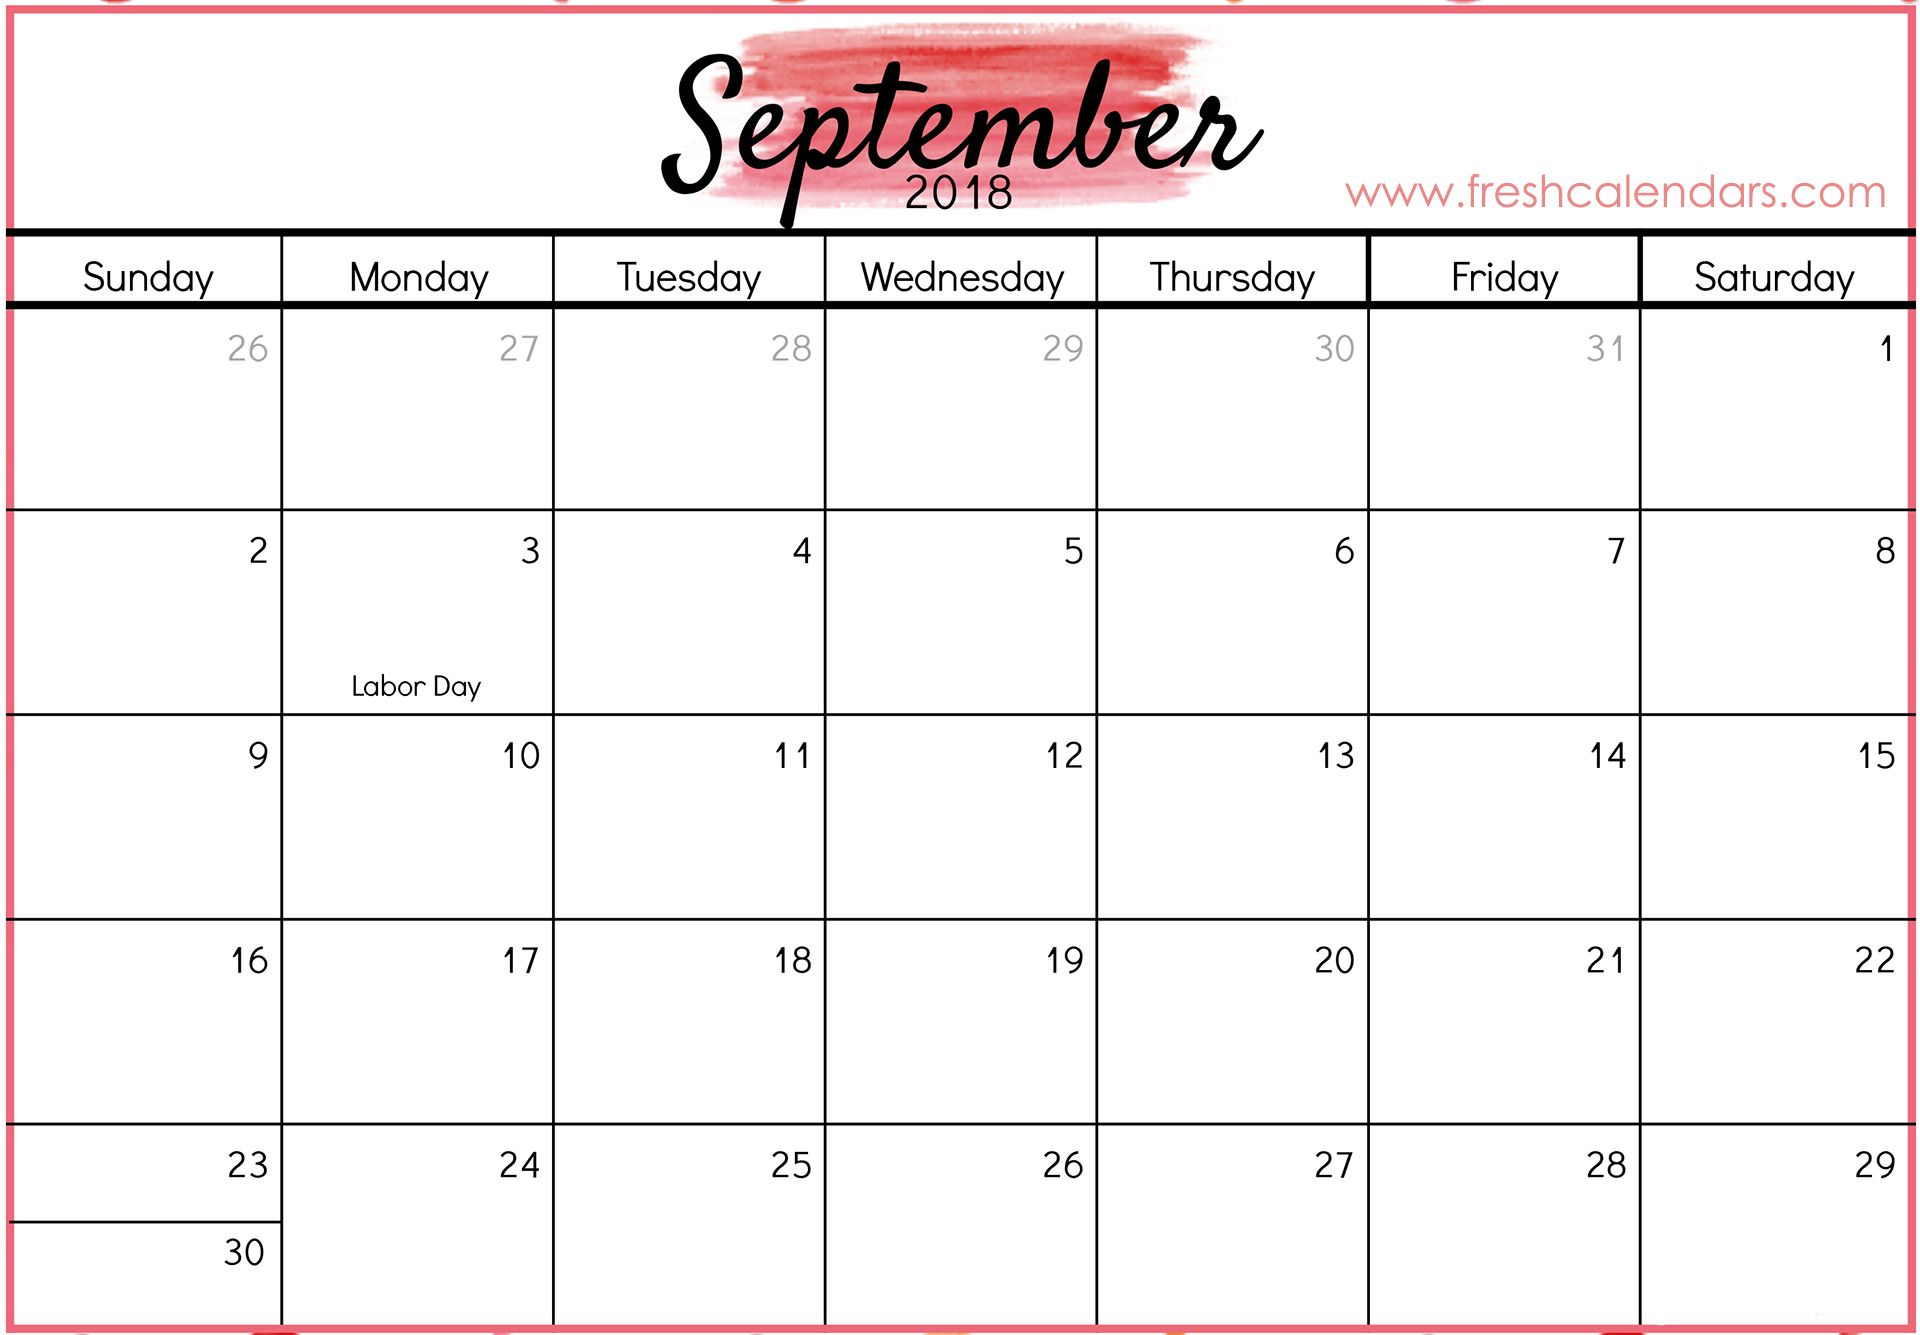 photograph about September Printable Calendar known as September 2018 Calendar Printable - Clean Calendars